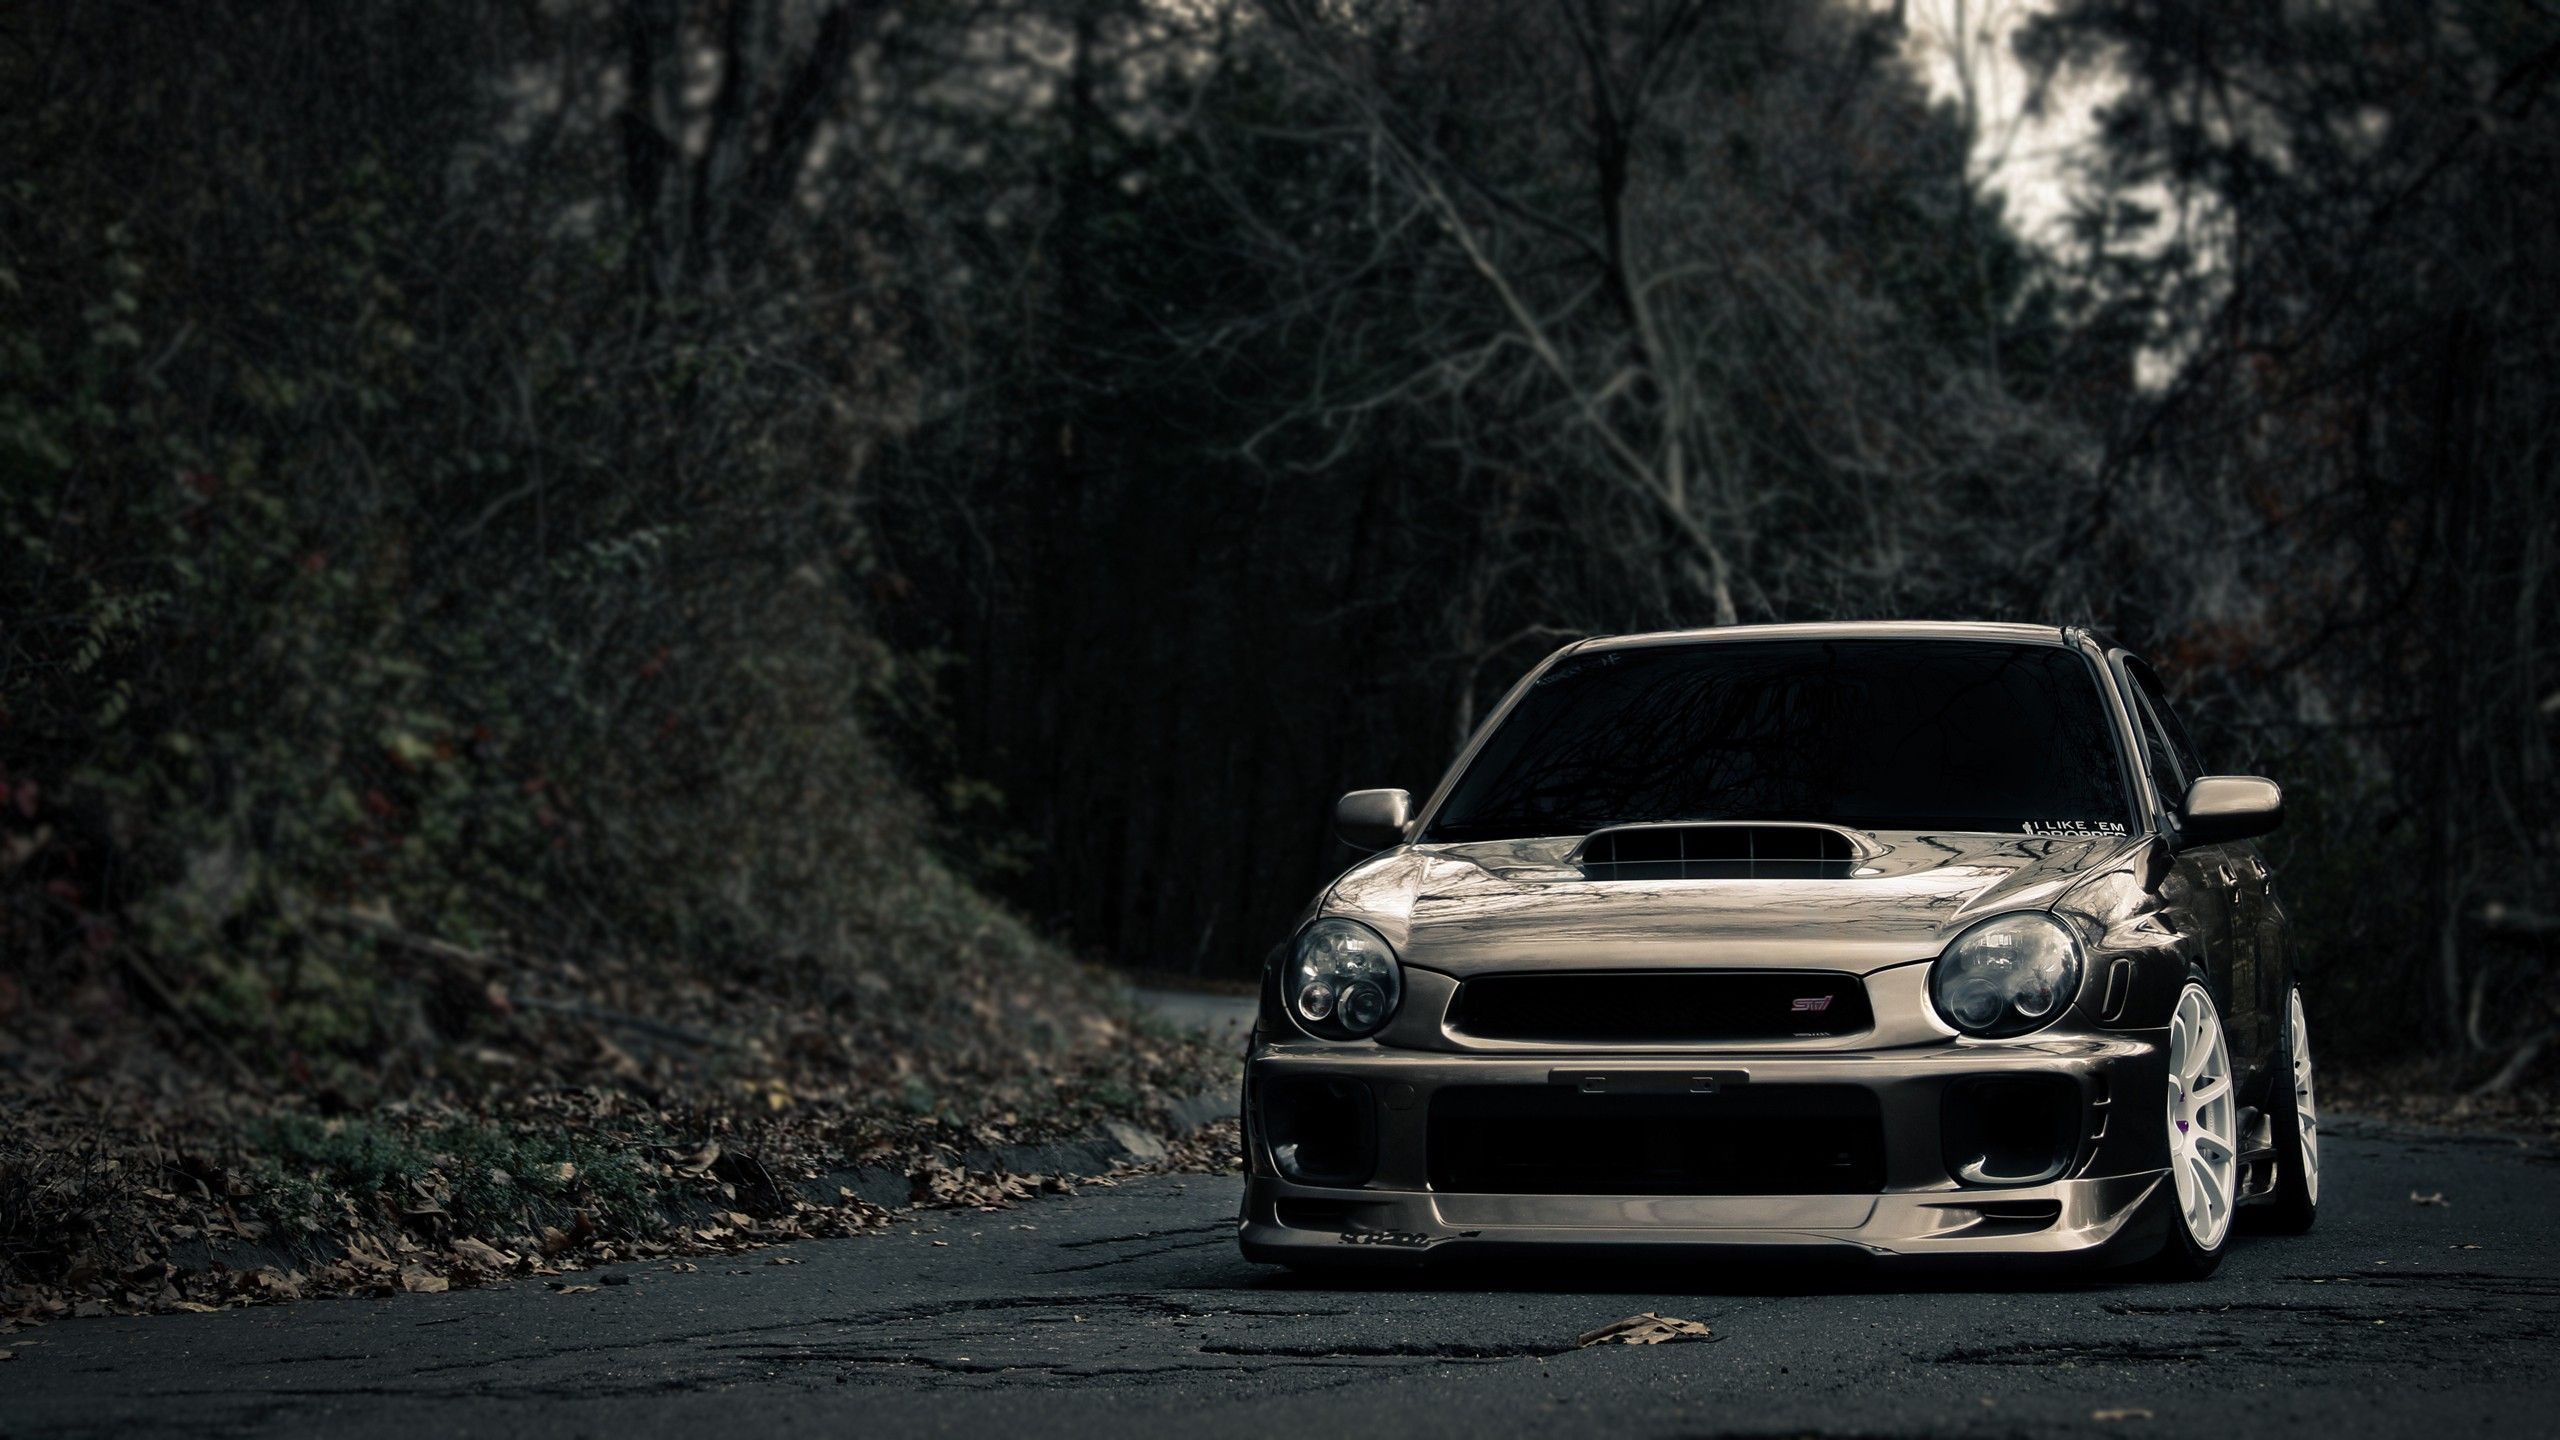 Just an amazing Bugeye Subaru wallpaper. Im using this one